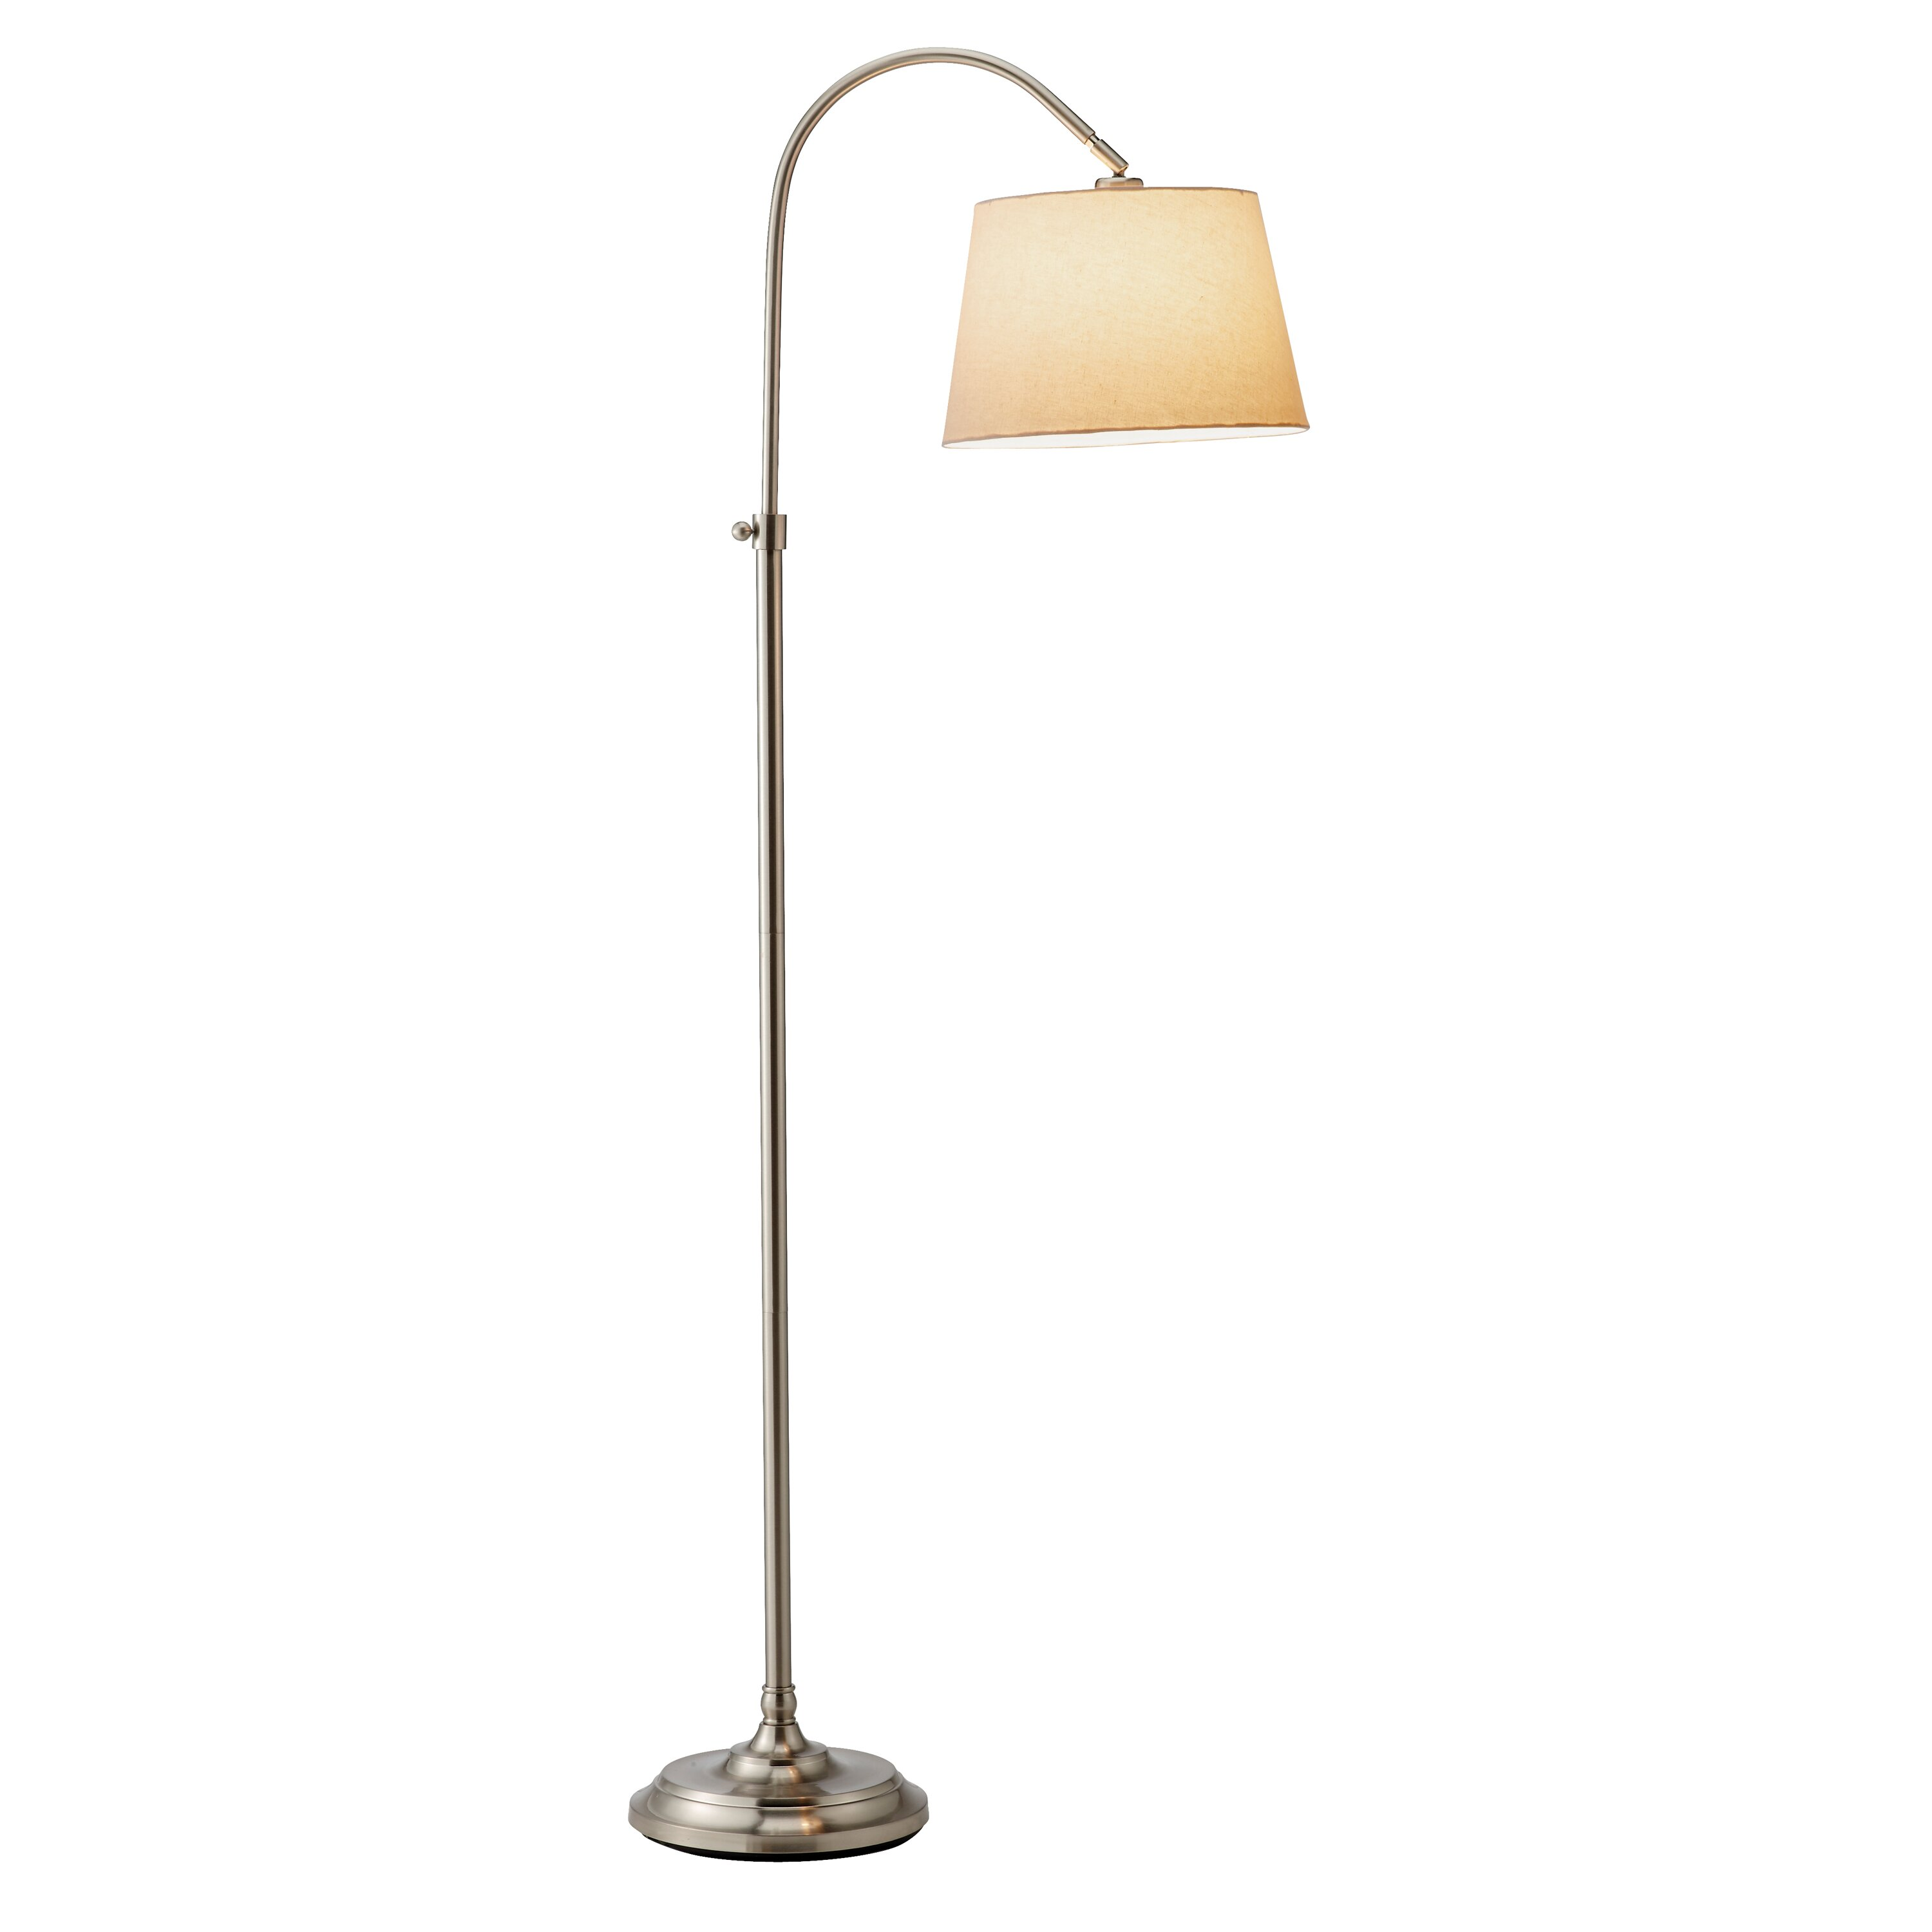 Adesso bonnet 62 arched floor lamp reviews wayfair for Arch floor lamps for living room